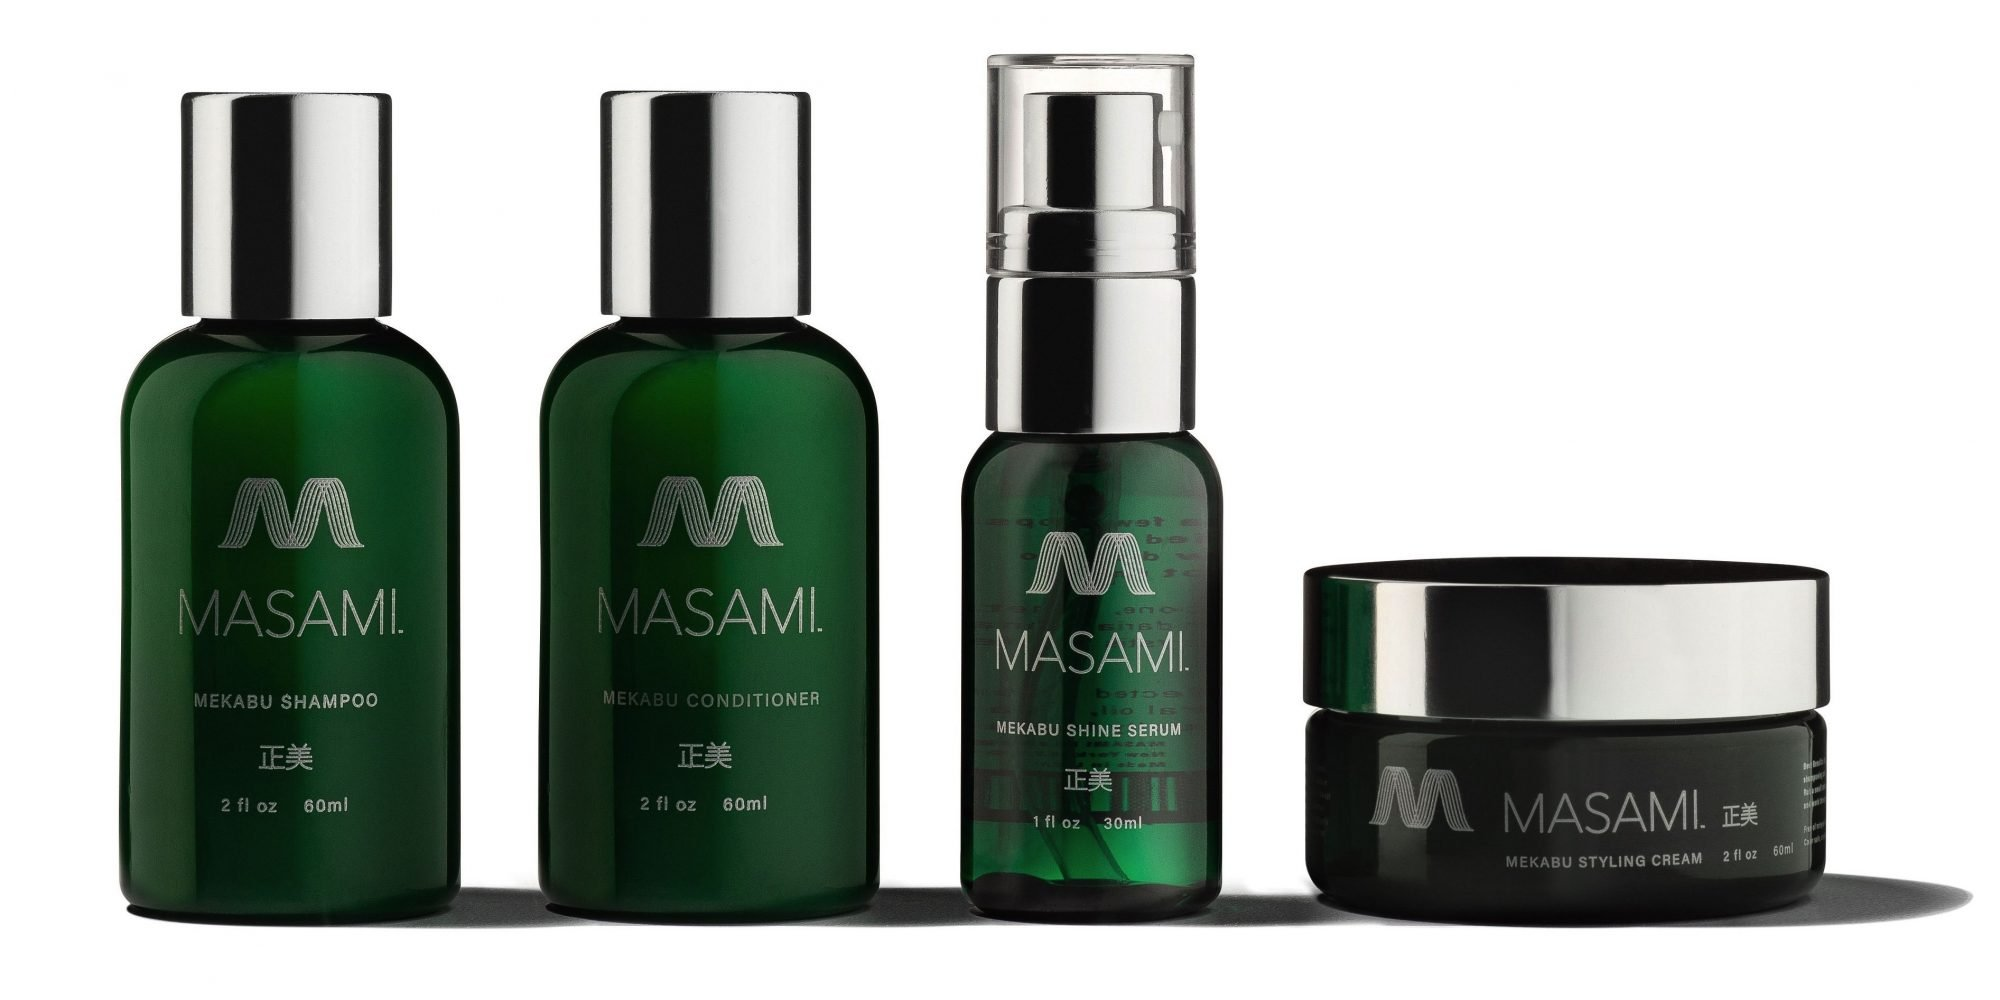 Masami Powers Premium Clean Haircare Products With Nutrient-Packed Japanese Seaweed